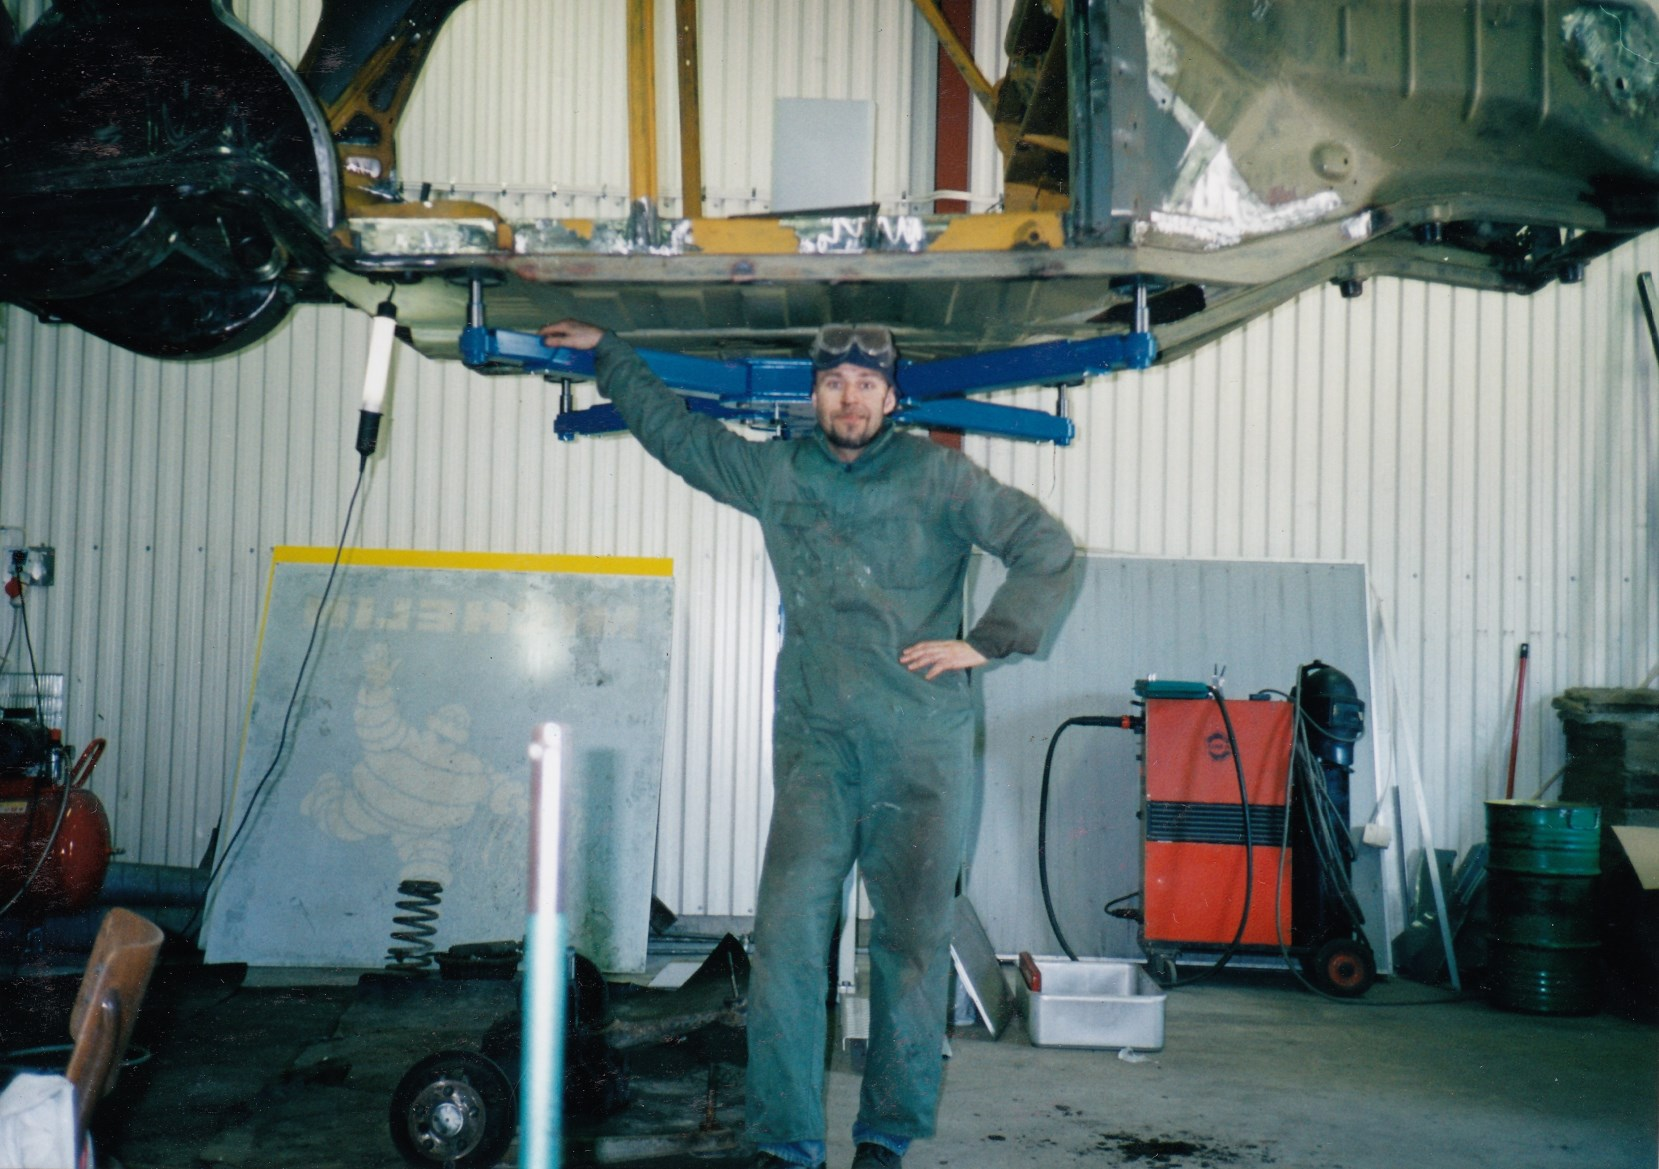 Me working side by side with the welder in Kisa on my Mercedes Ponton, 2001